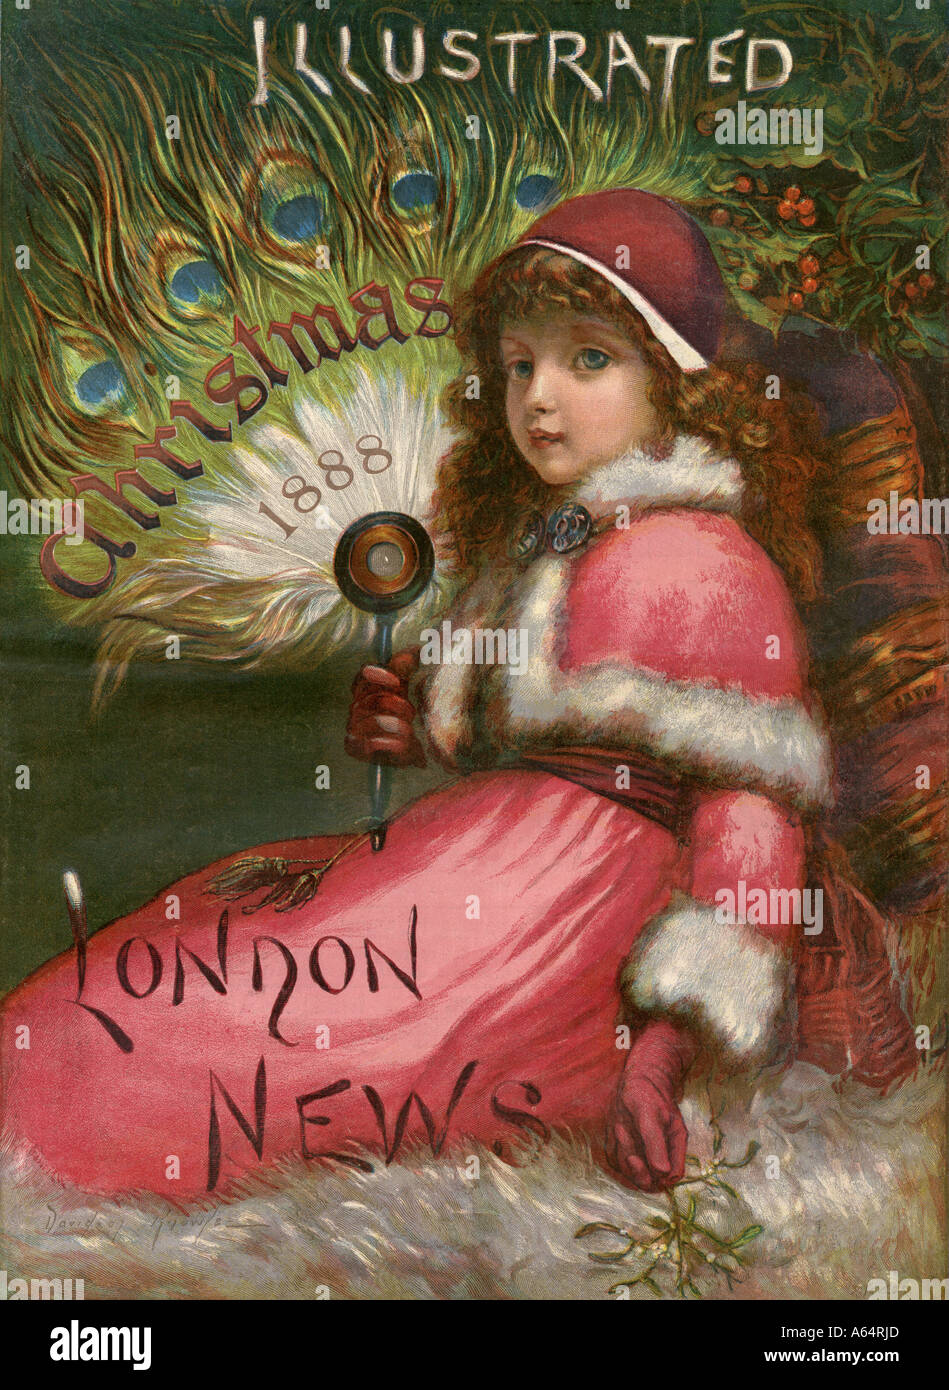 Christmas edition front page of the Illustrated London News 1888. Color lithograph - Stock Image